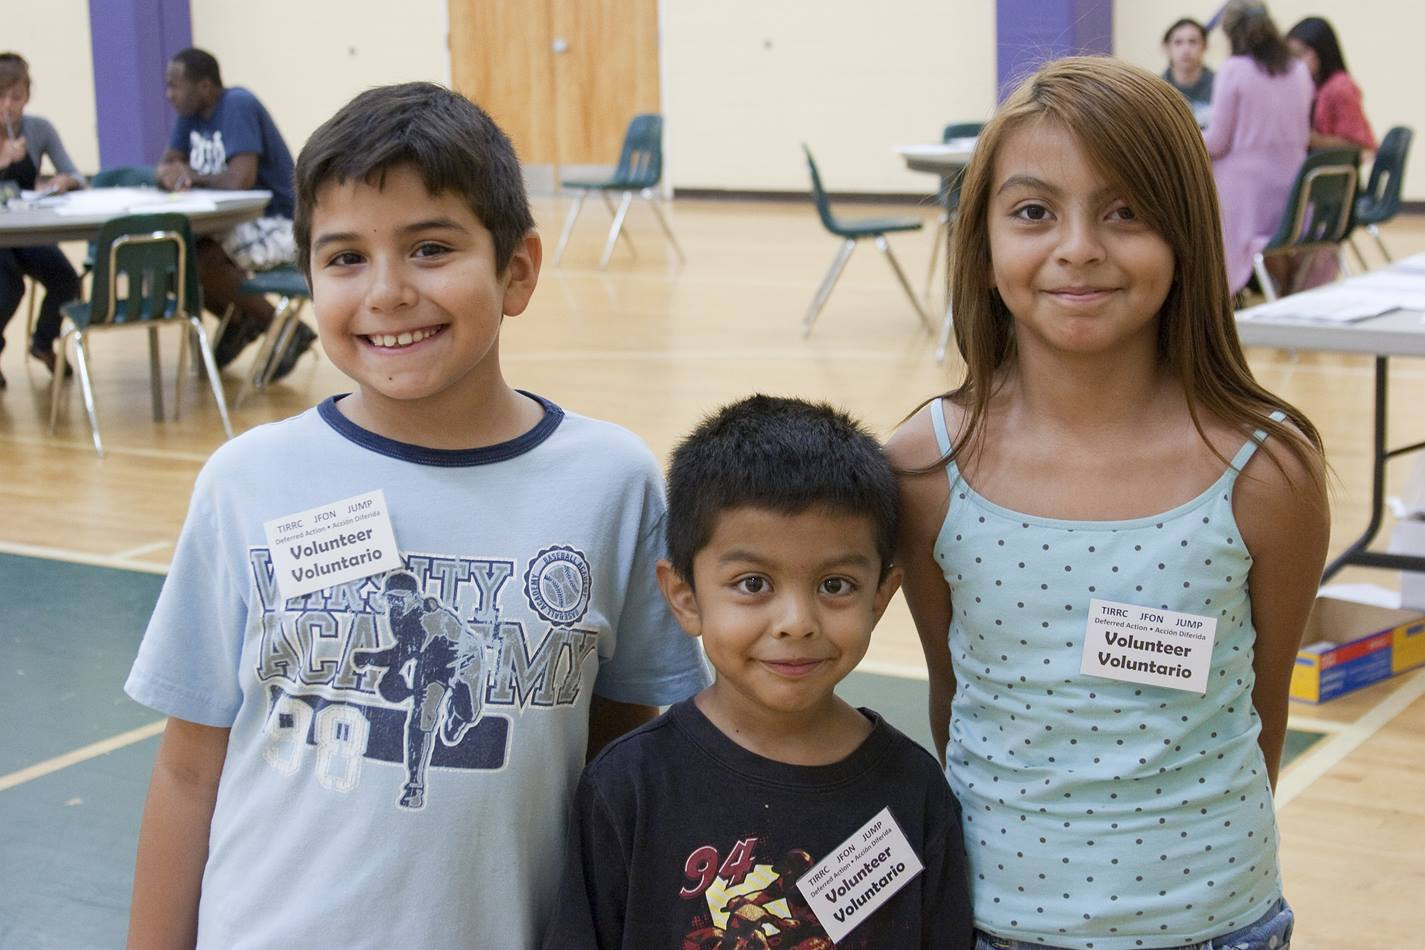 Children volunteer and welcome clients at the JFON legal immigration clinic